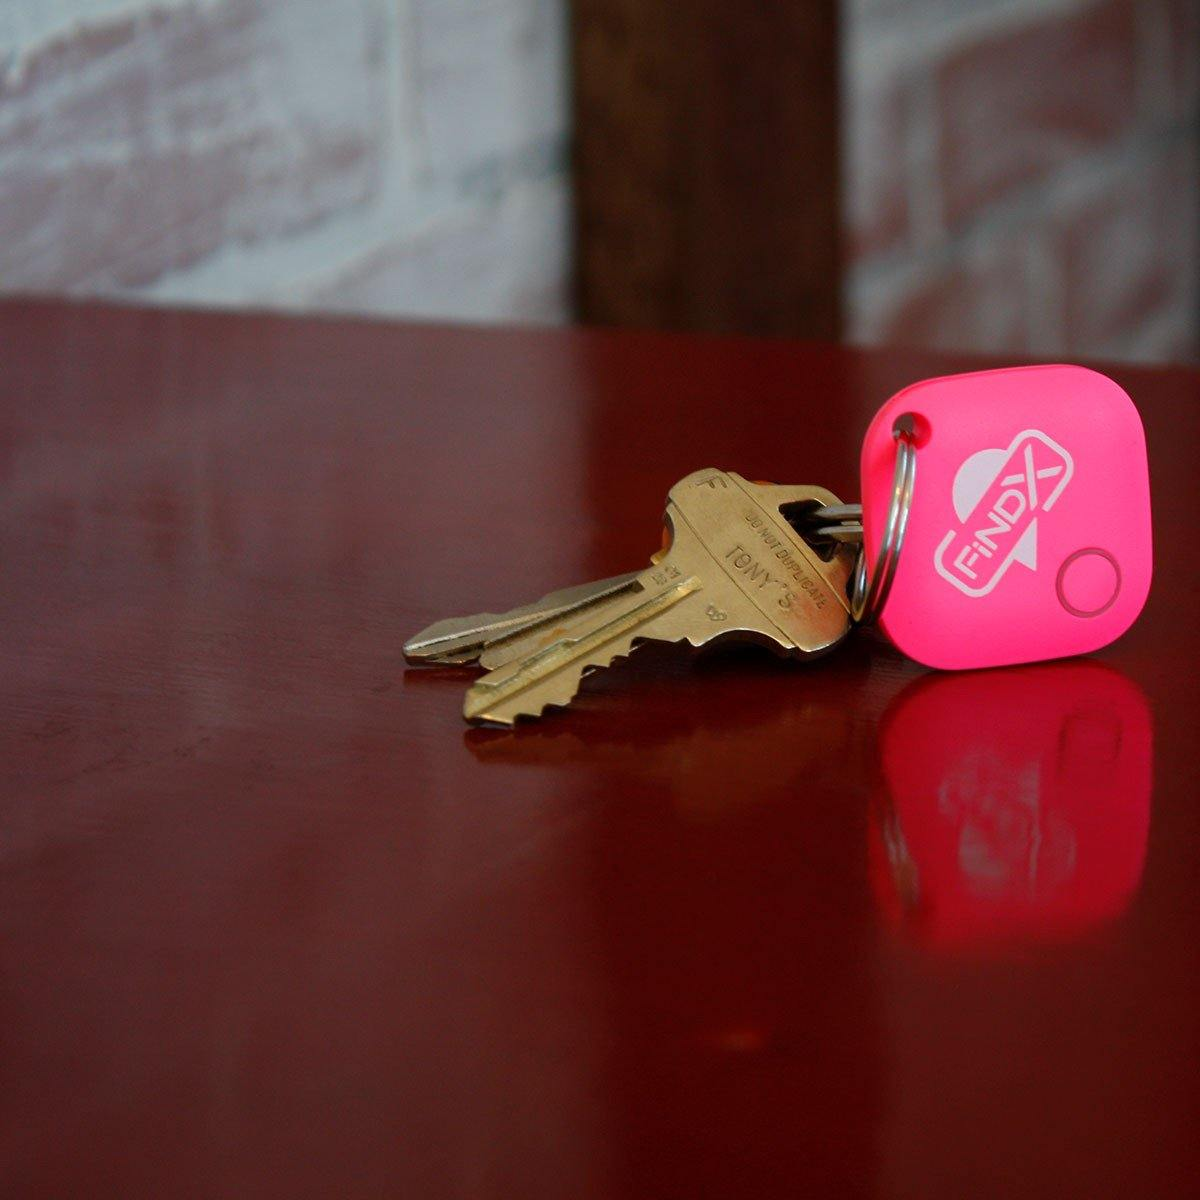 FindX Bluetooth Tracker - Pink